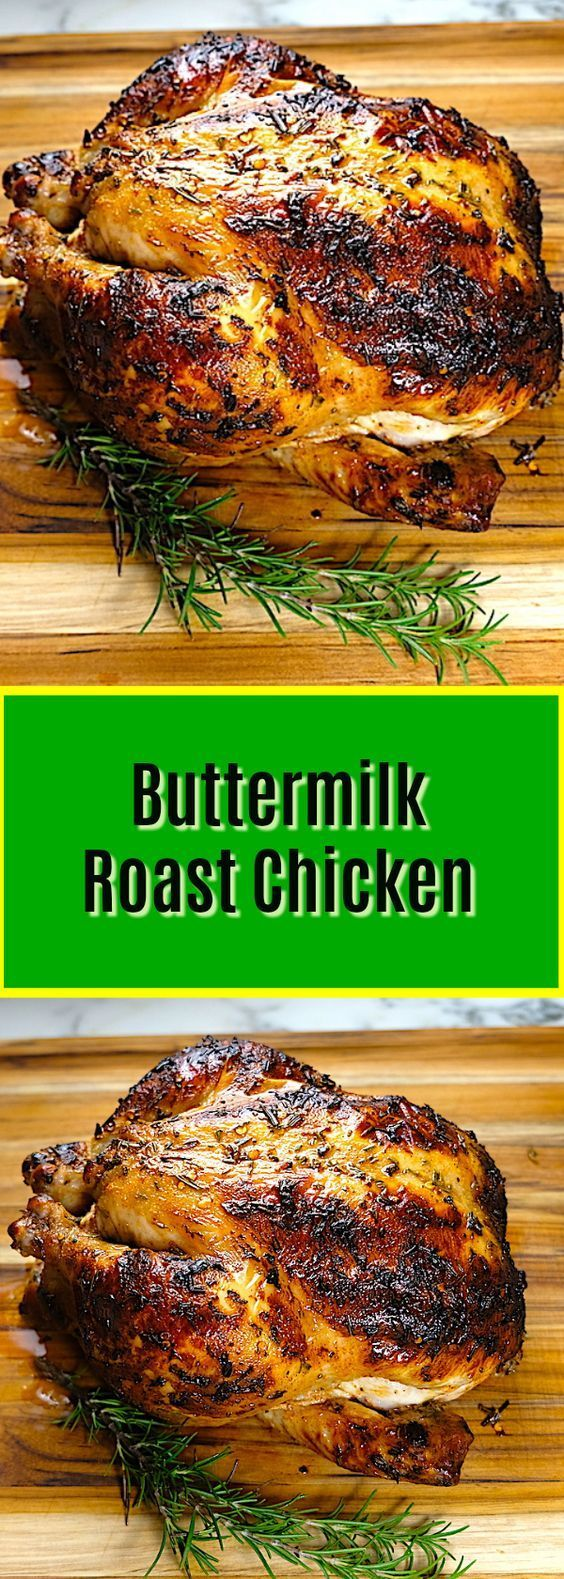 Buttermilk Roast Chicken Recipe Poultry Recipes Recipes Chicken Recipes